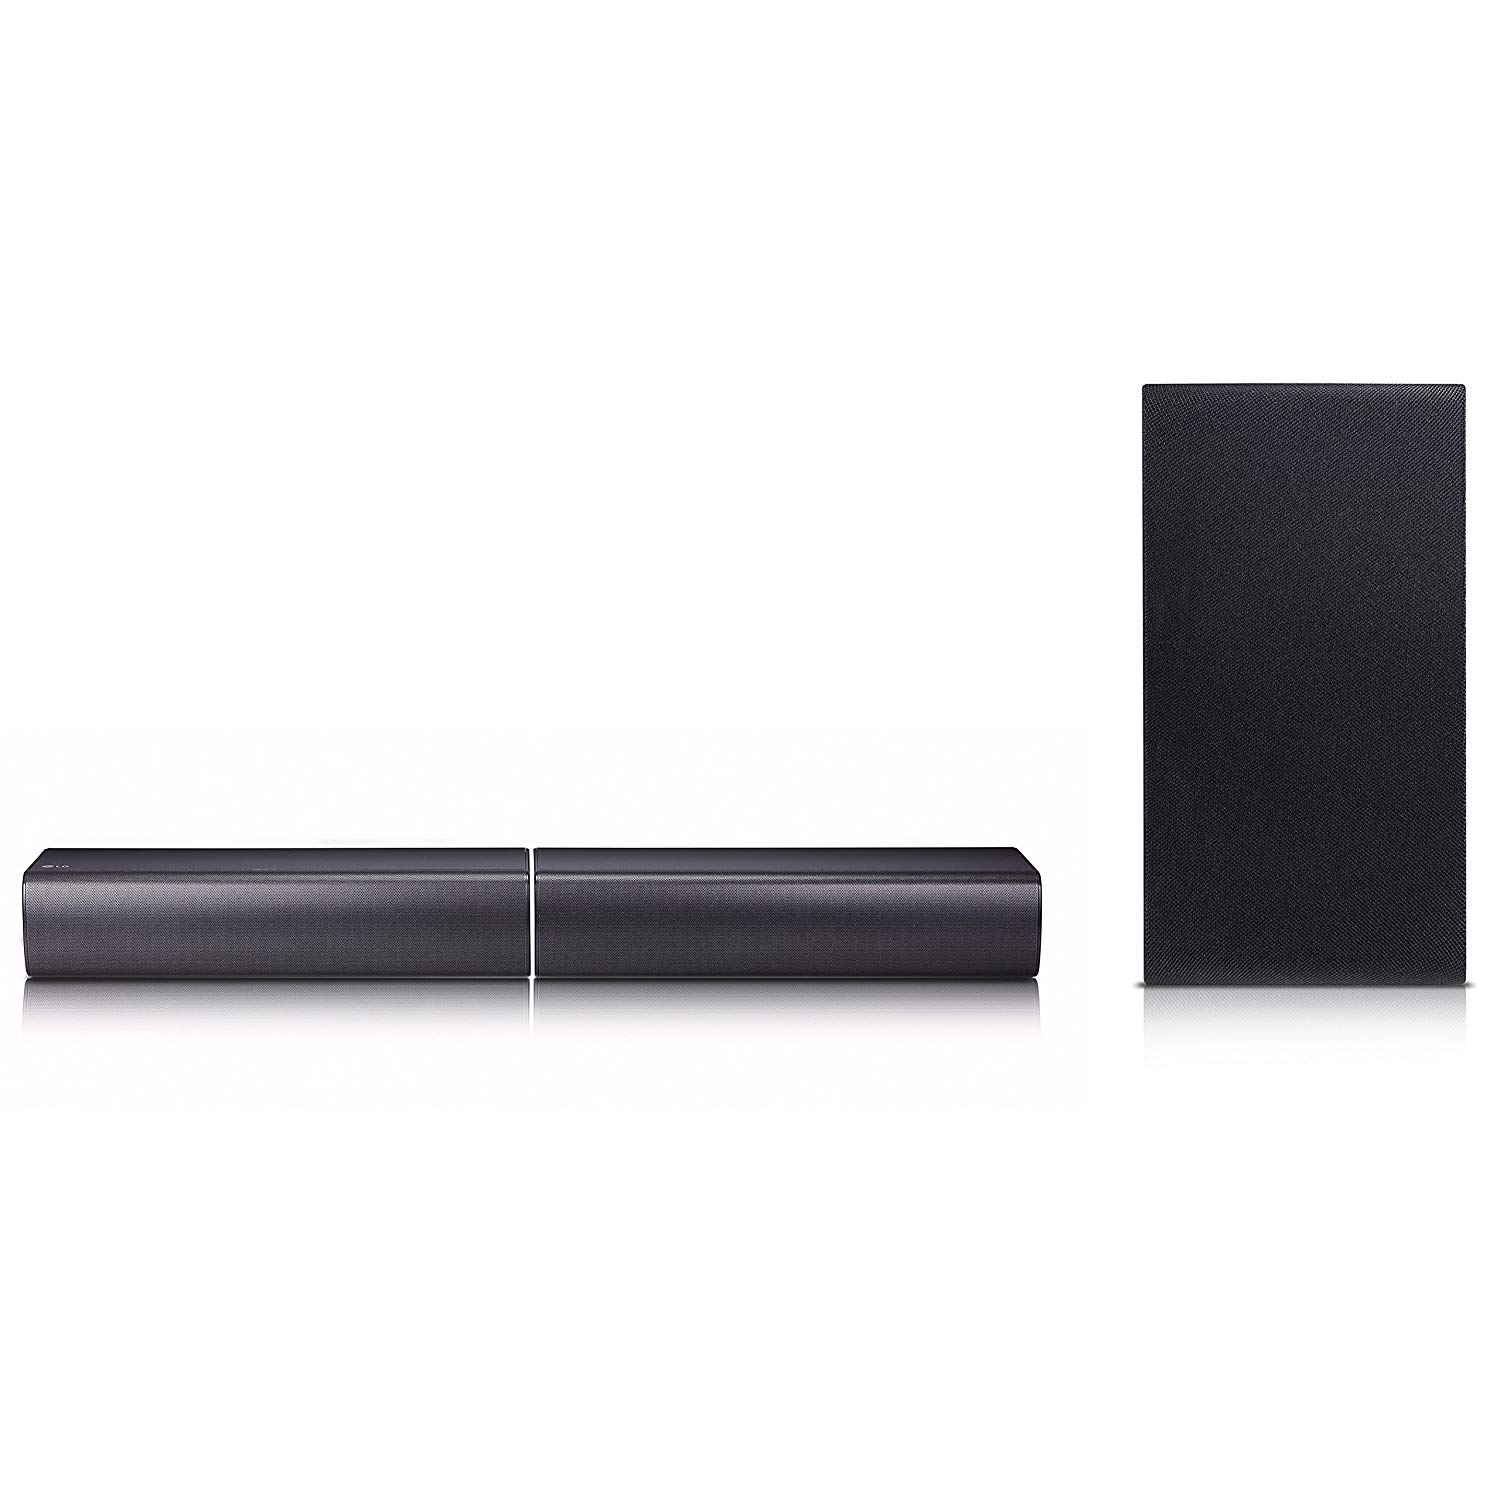 LG Electronics SJ7 Sound Bar Flex